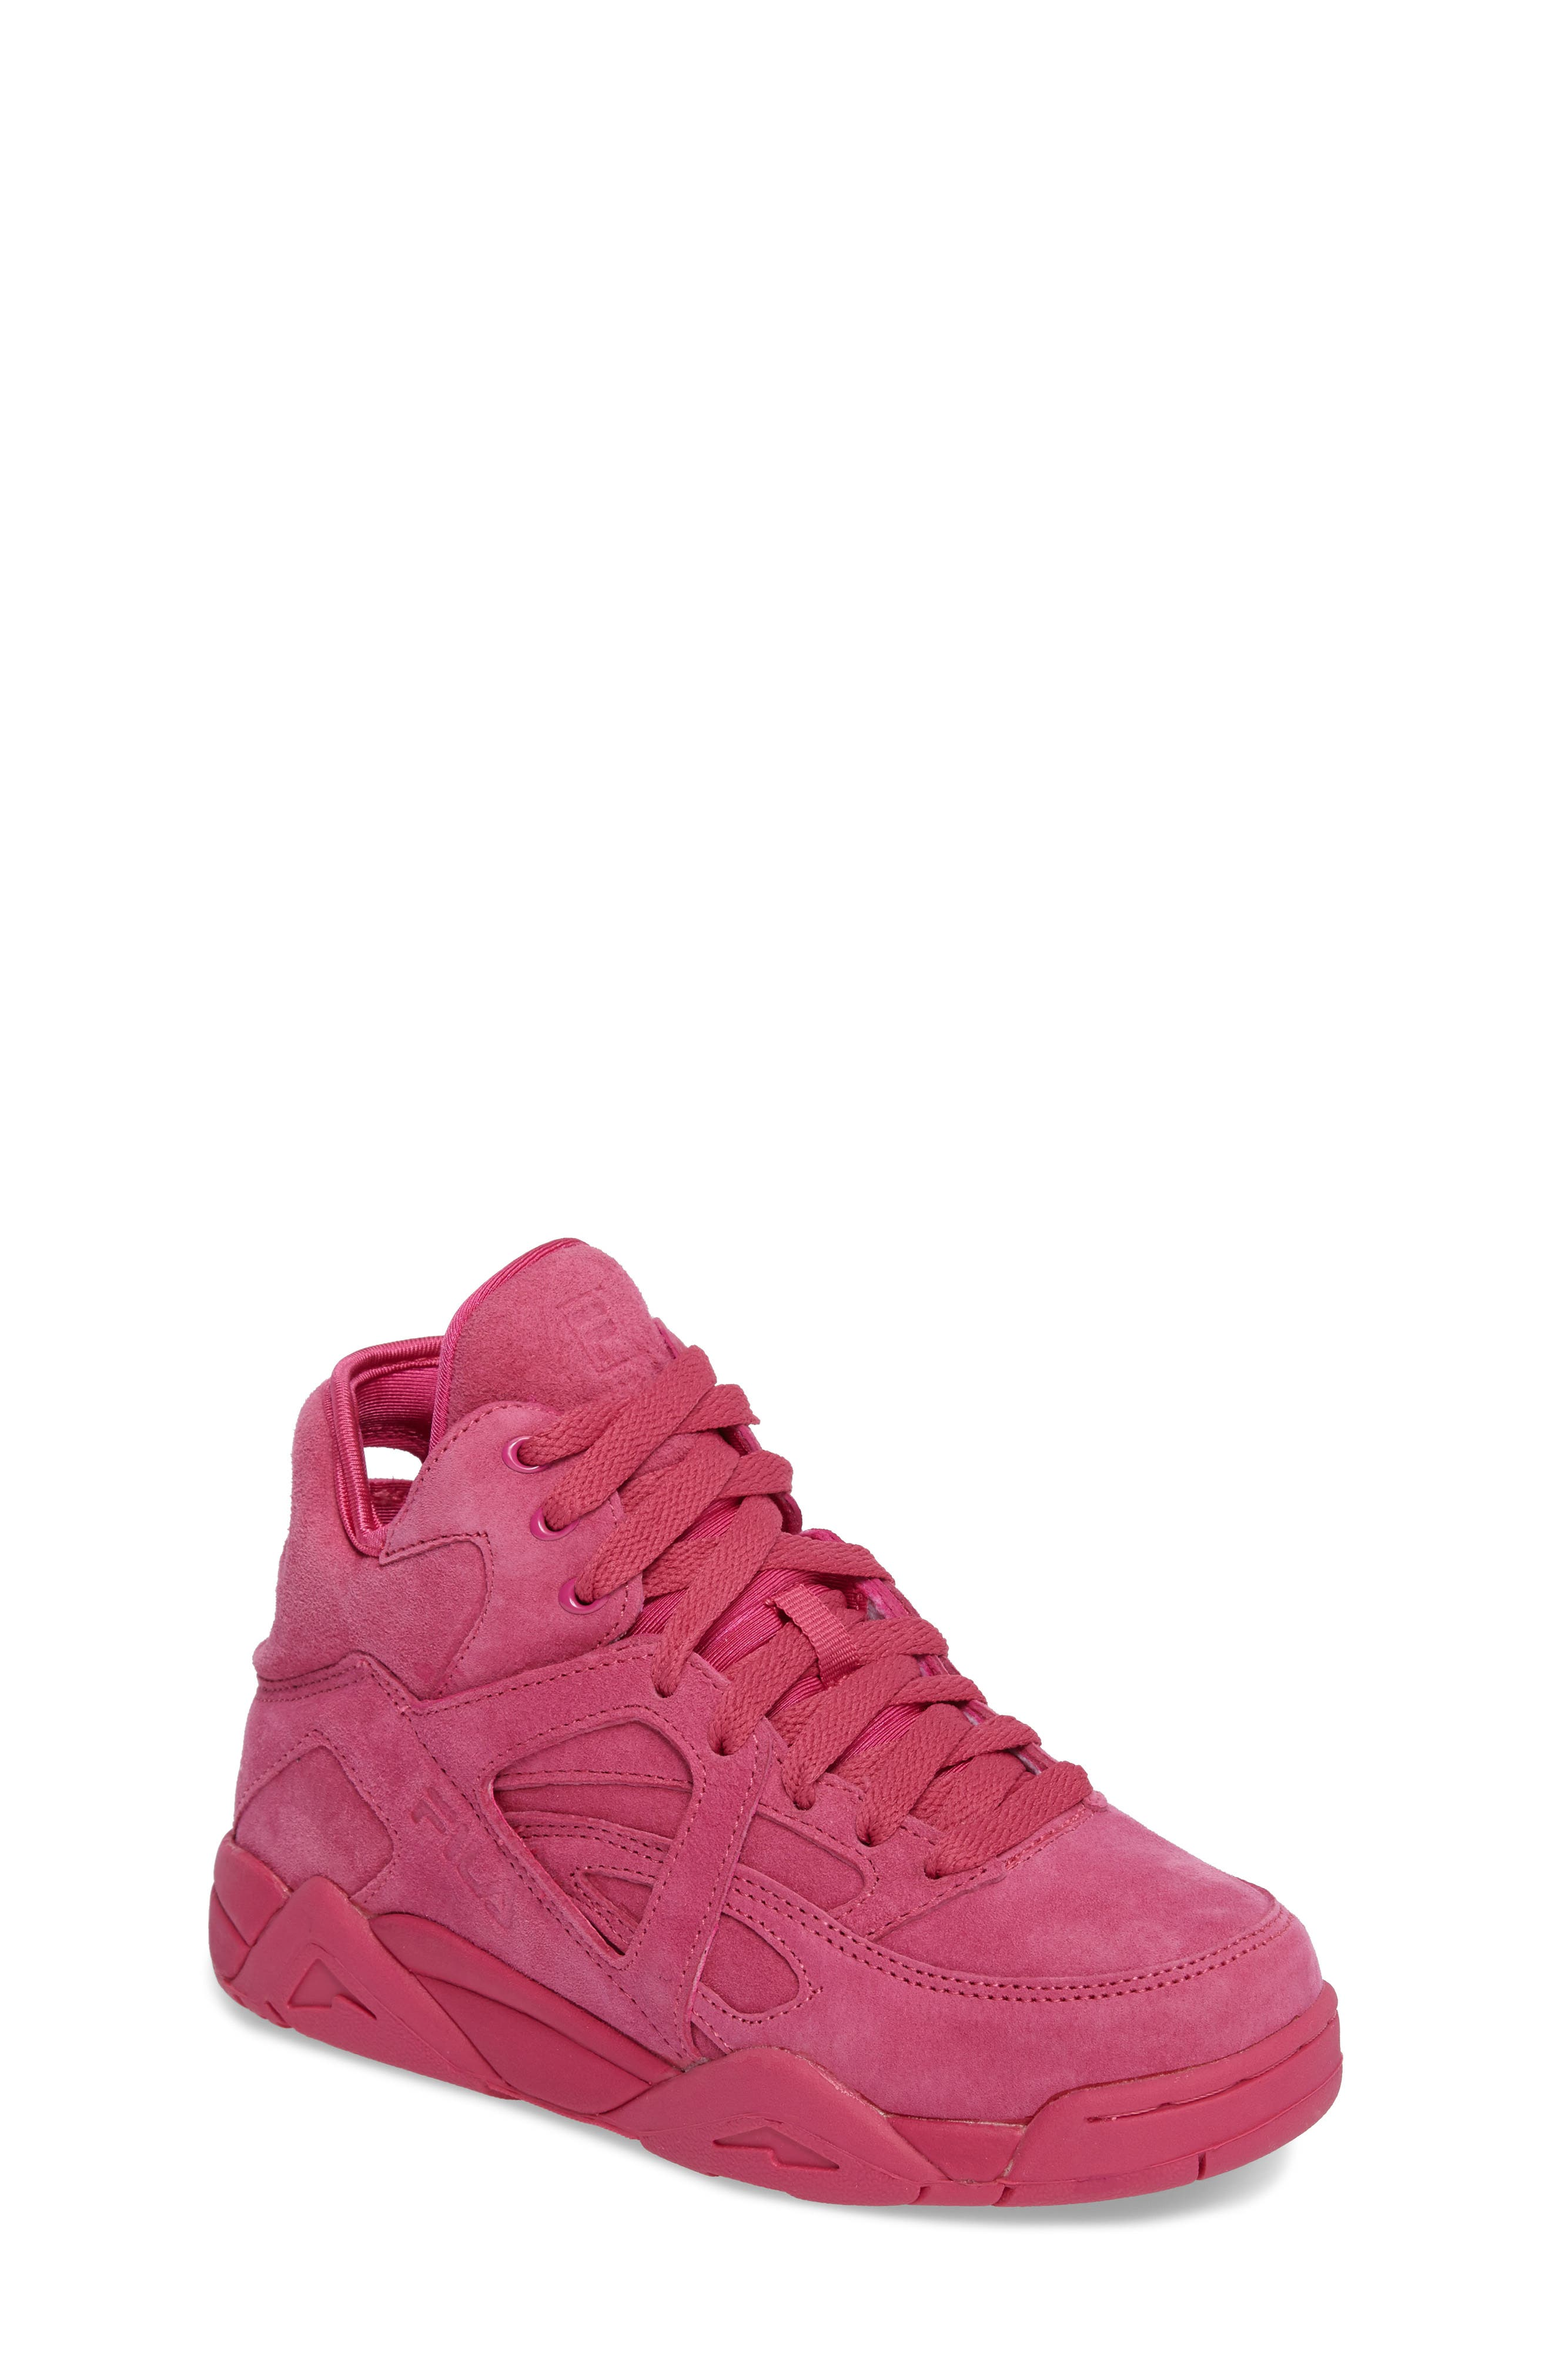 FILA The Cage High Top Sneaker